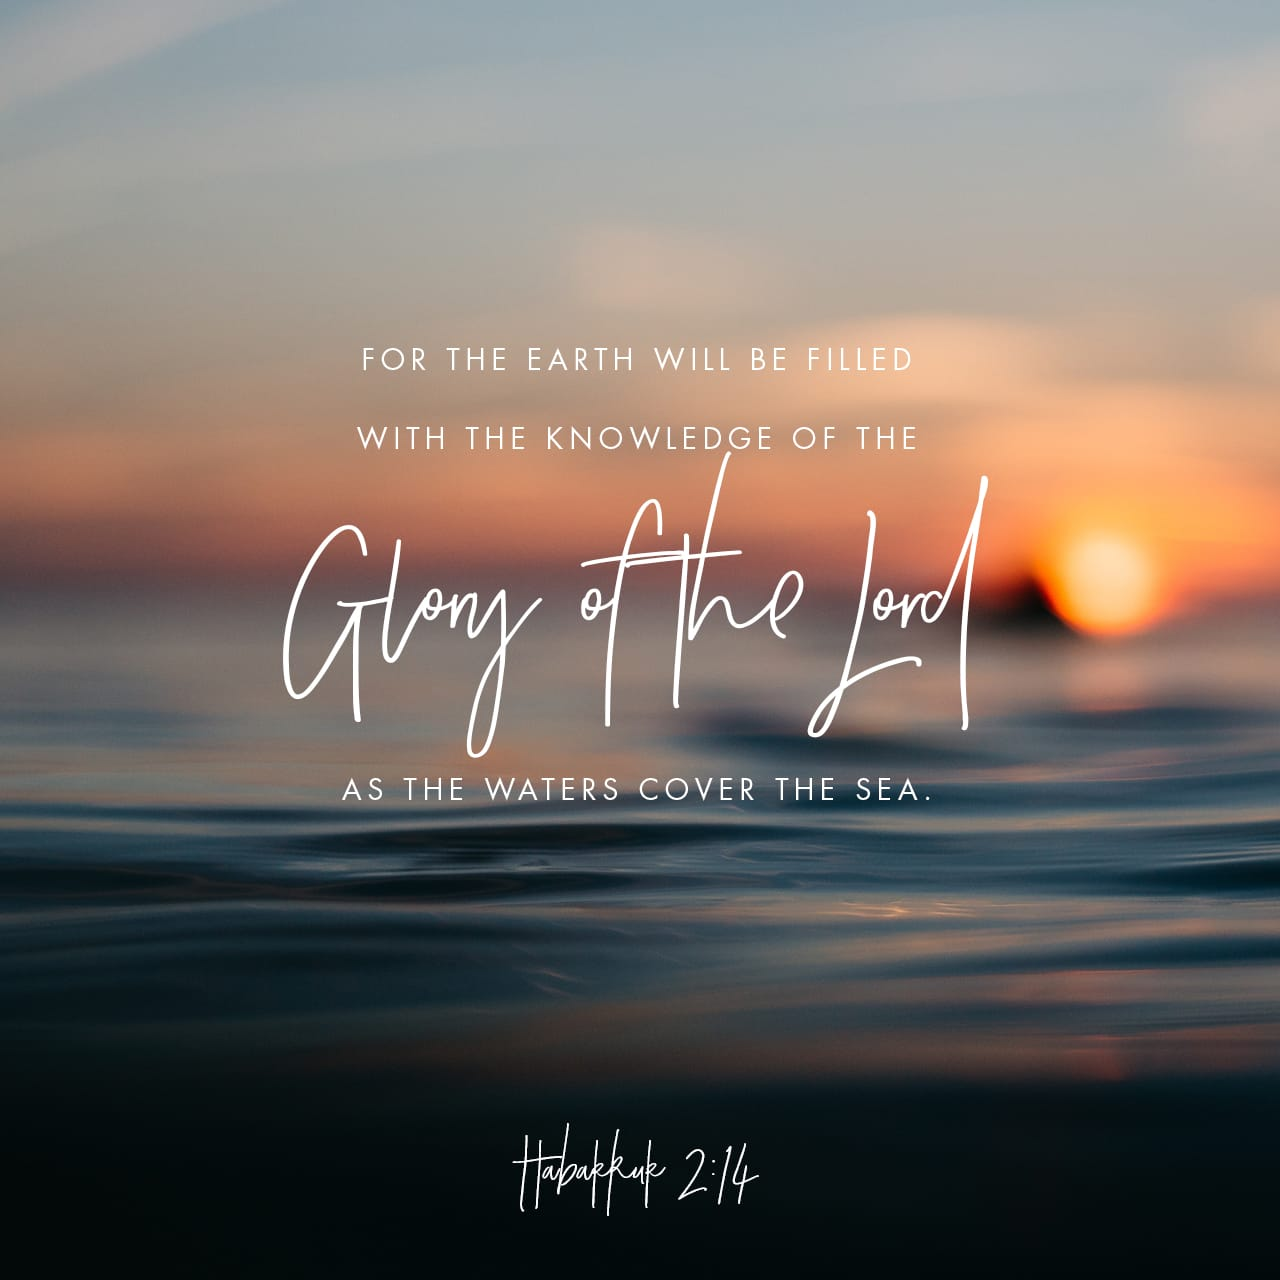 Habakkuk 2:14 For the earth will be filled with the knowledge of the glory of the LORD as the waters cover the sea. | New International Version (NIV)